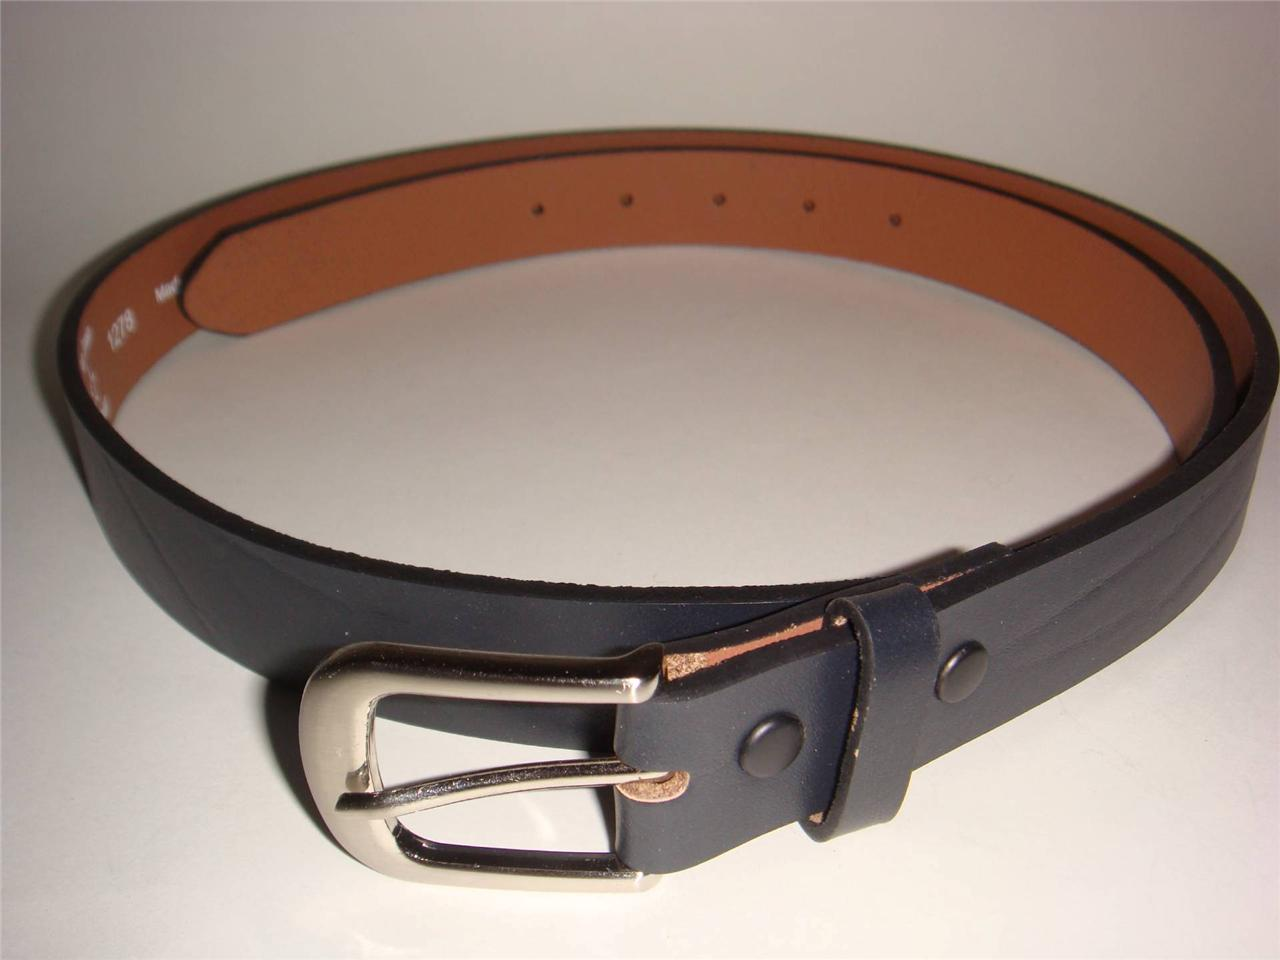 high quality big top grain leather belt 1 2 inch wide